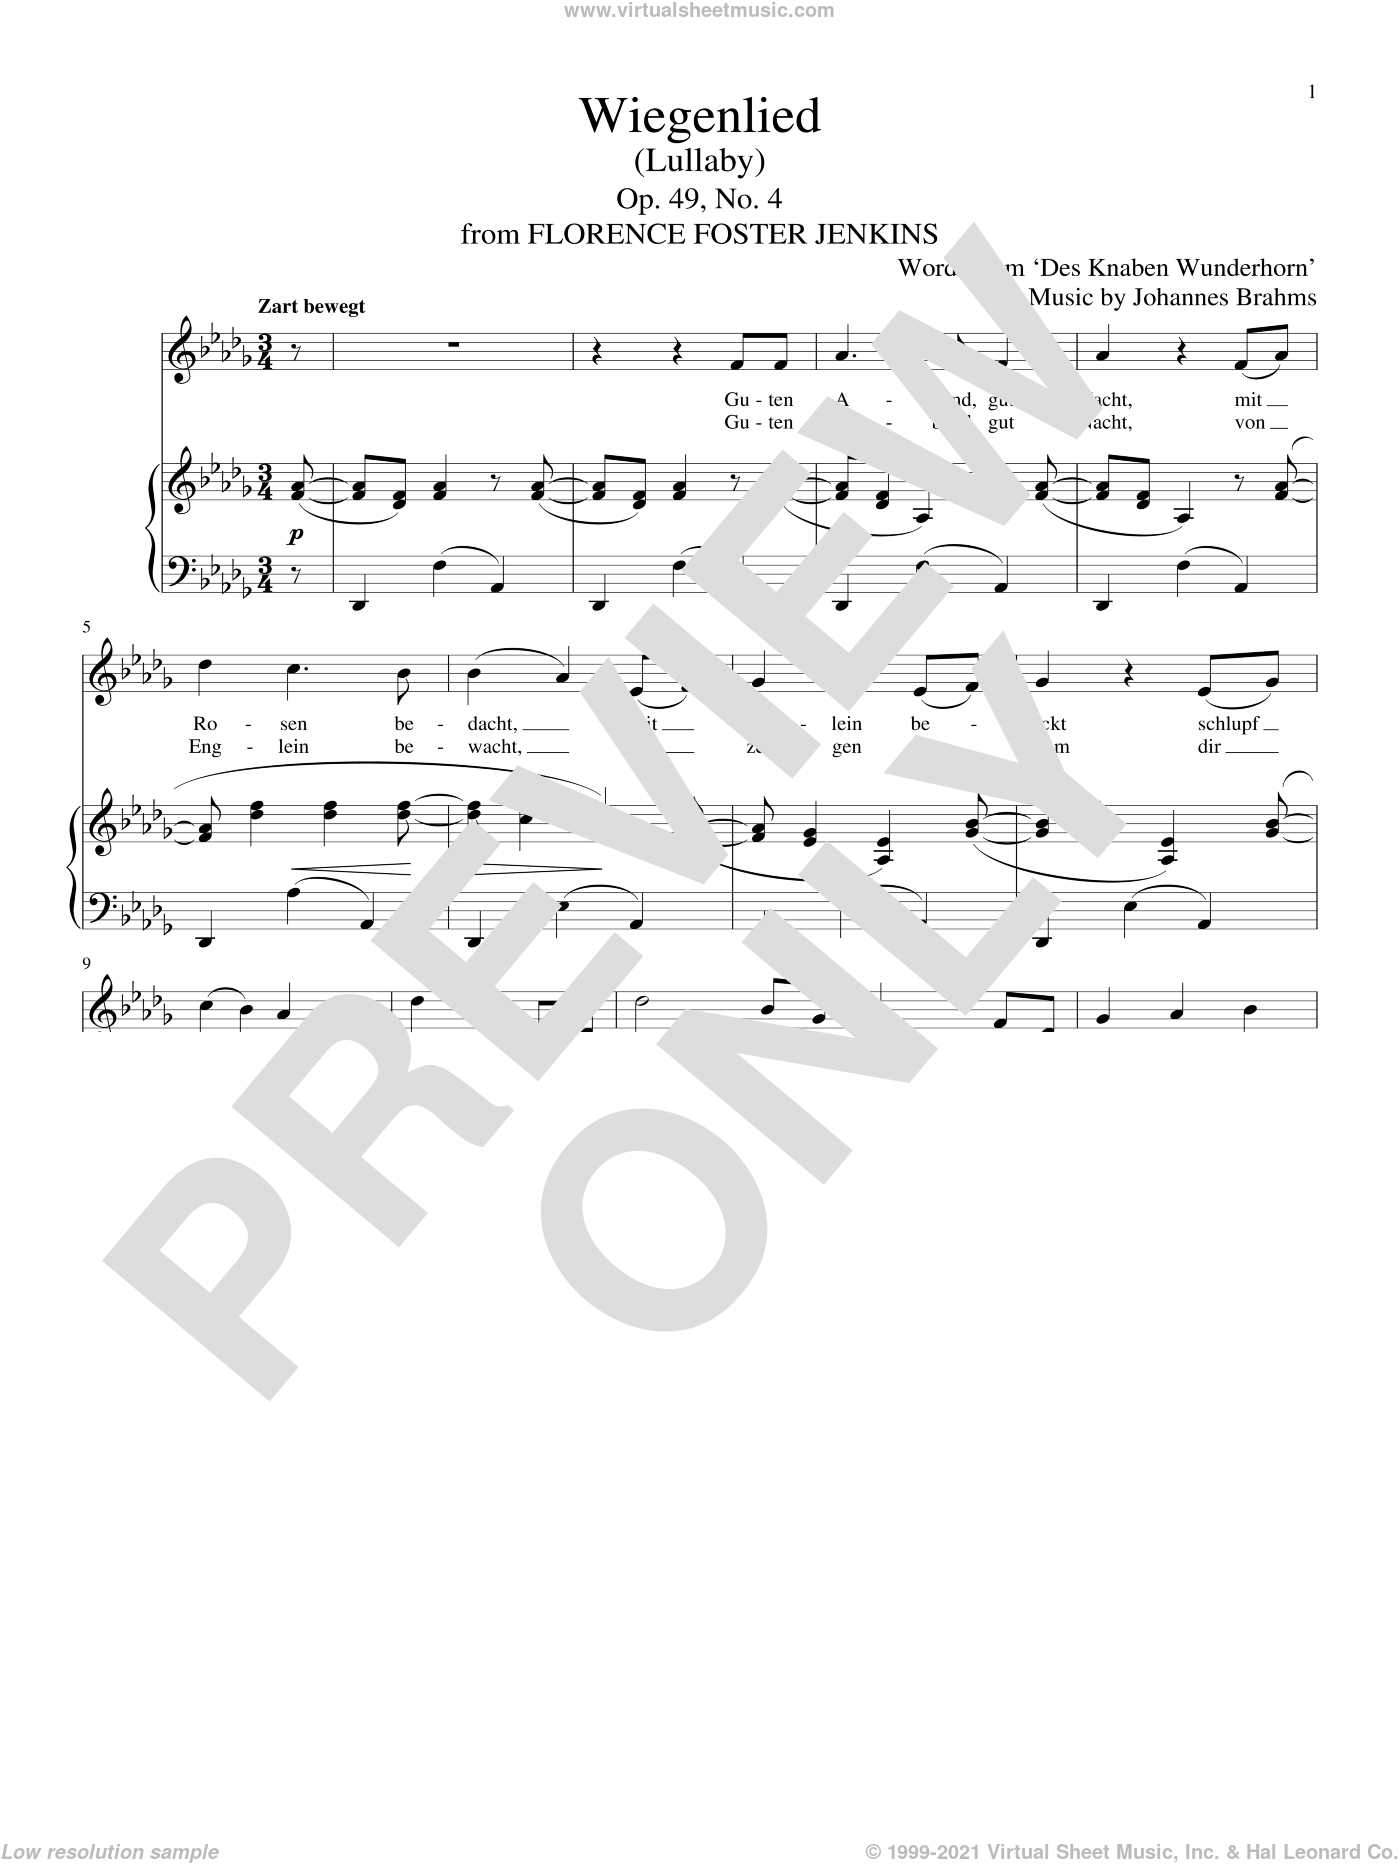 Wiegenlied (Lullaby) sheet music for voice and piano by Johannes Brahms and Alexandre Desplat, classical score, intermediate skill level